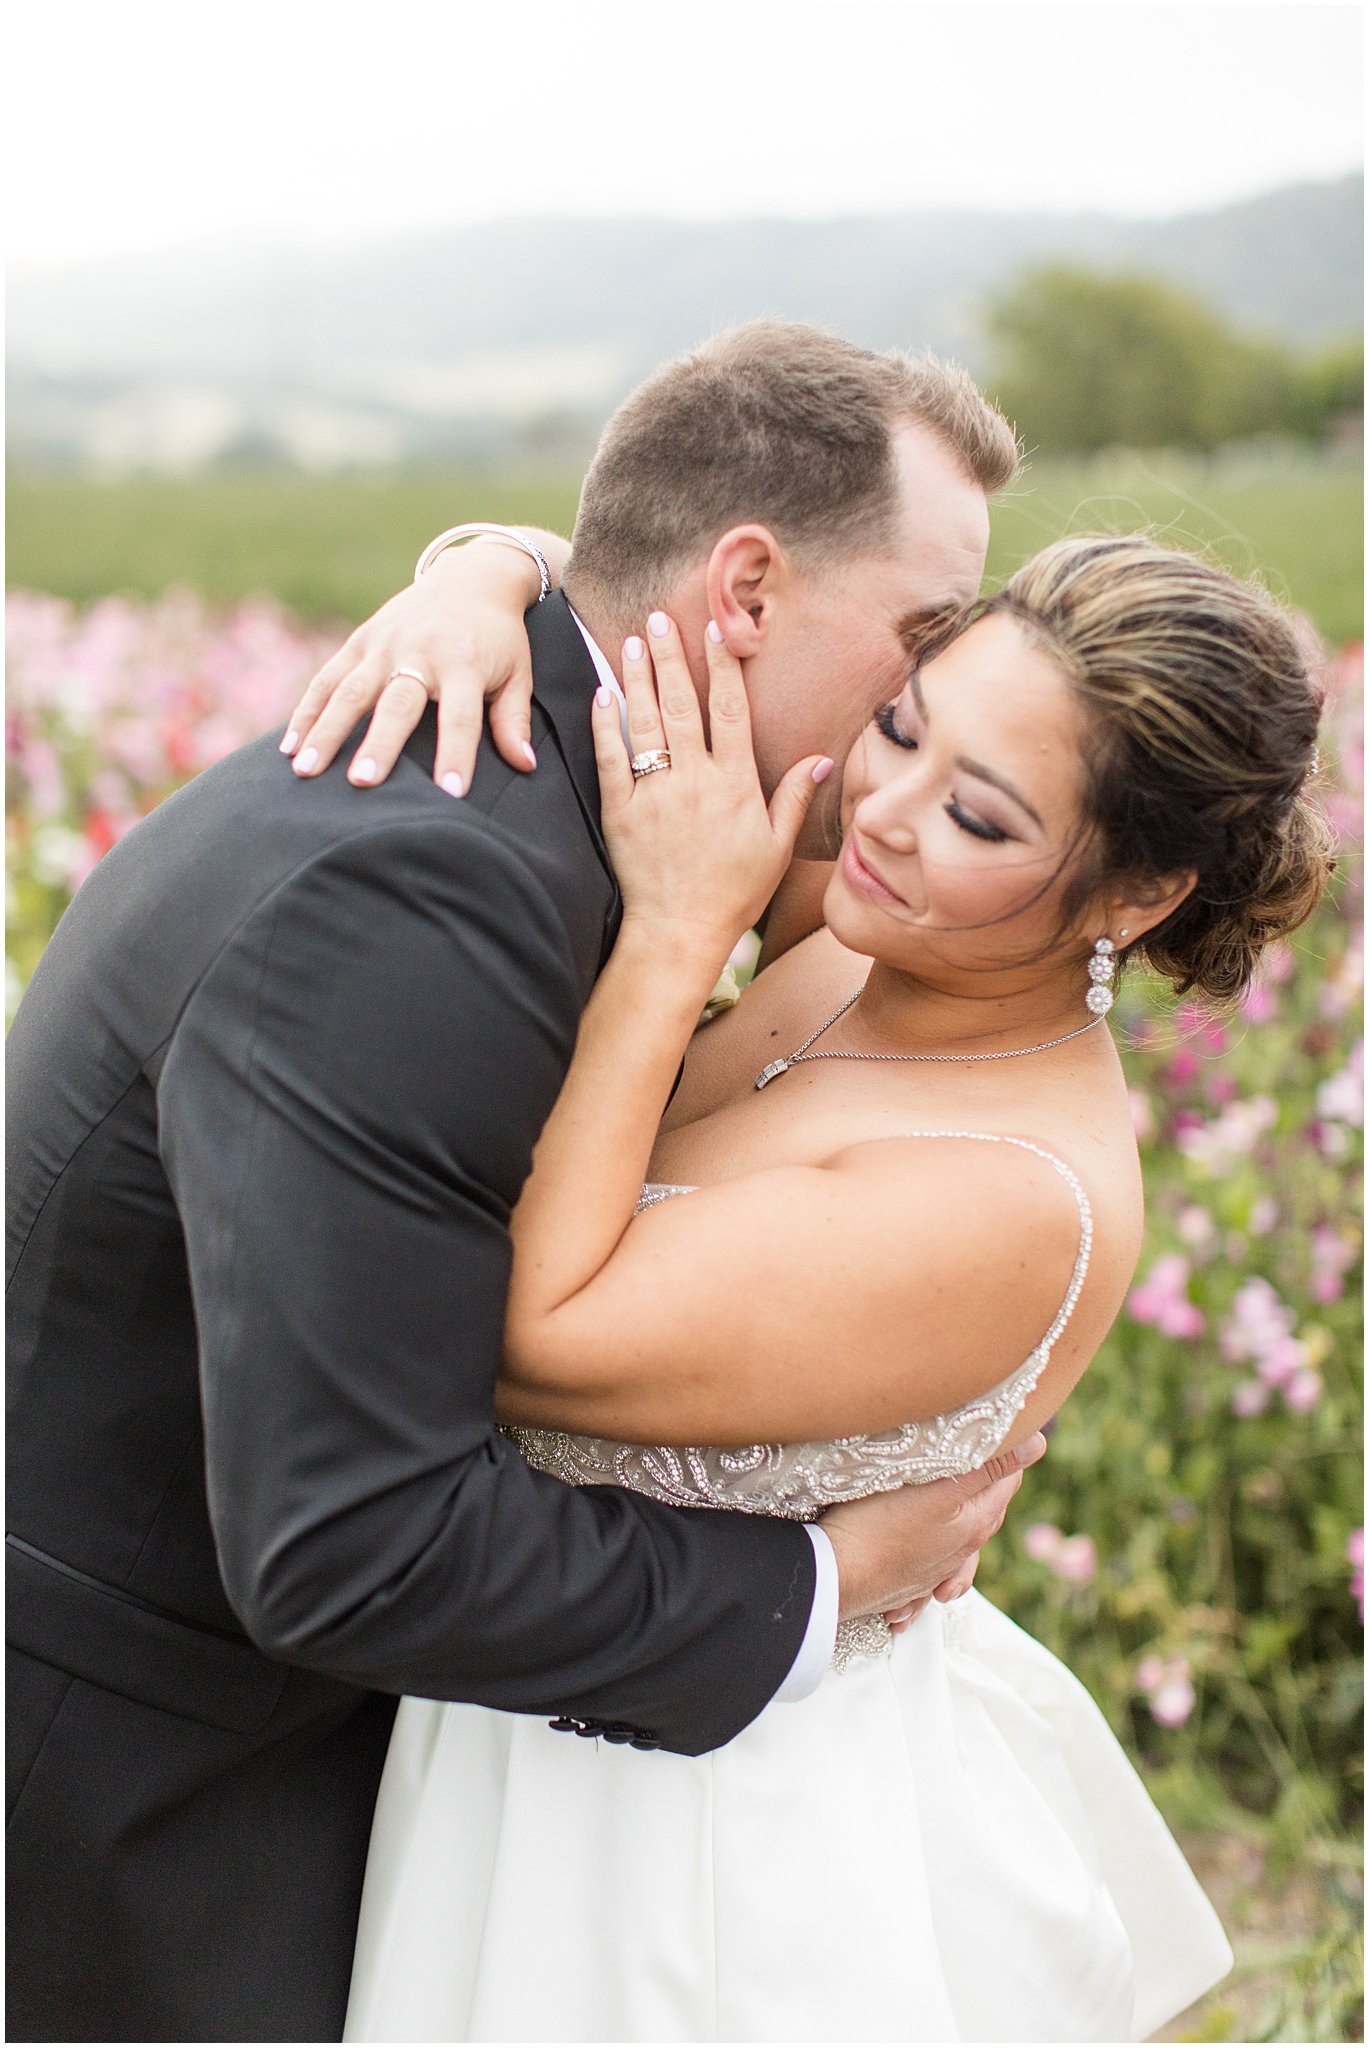 2019 wedding san juan bautista hacienda de leal vineyards bay area wedding photographer_0092.jpg